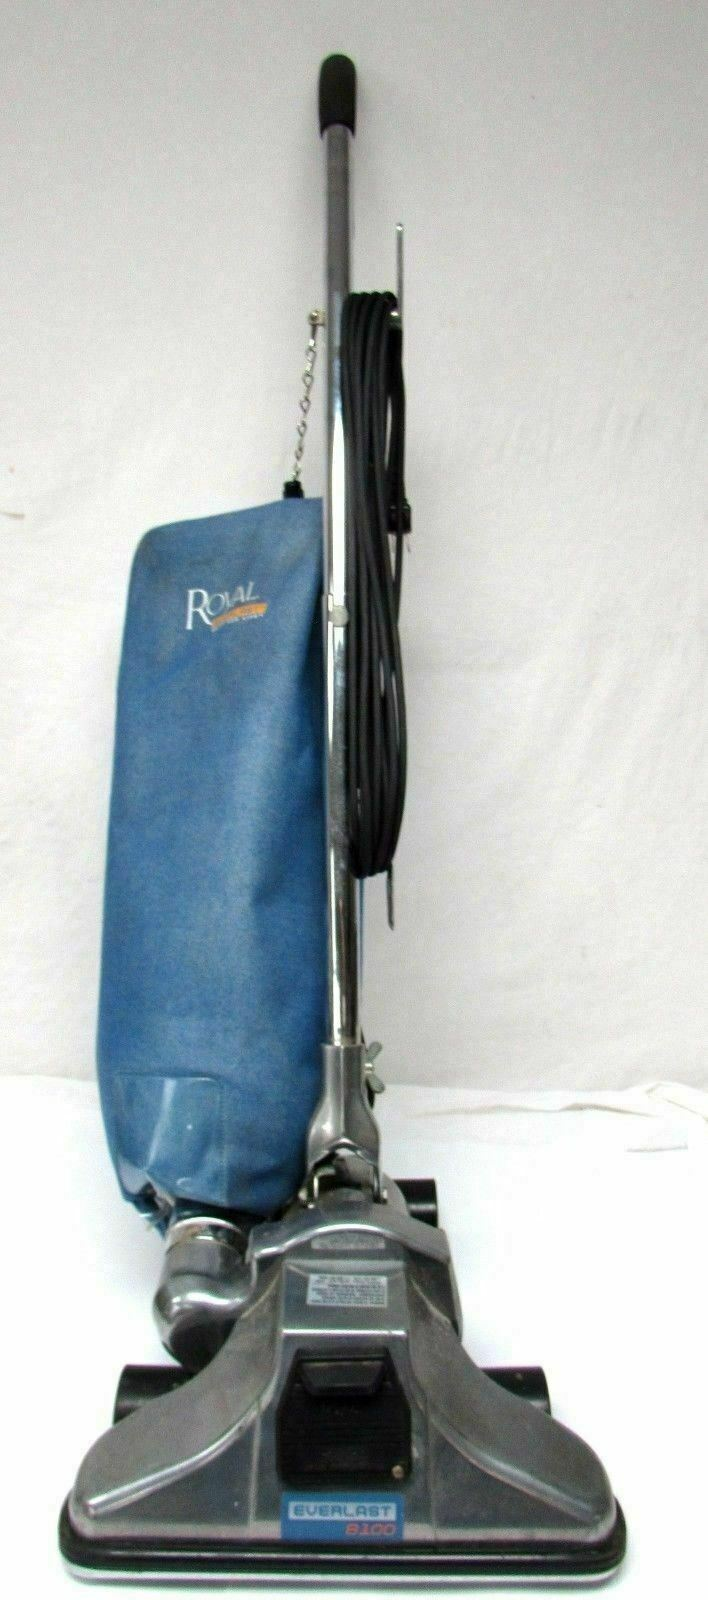 Royal Everlast MRY 8100 Commercial Vacuum Cleaner Upright